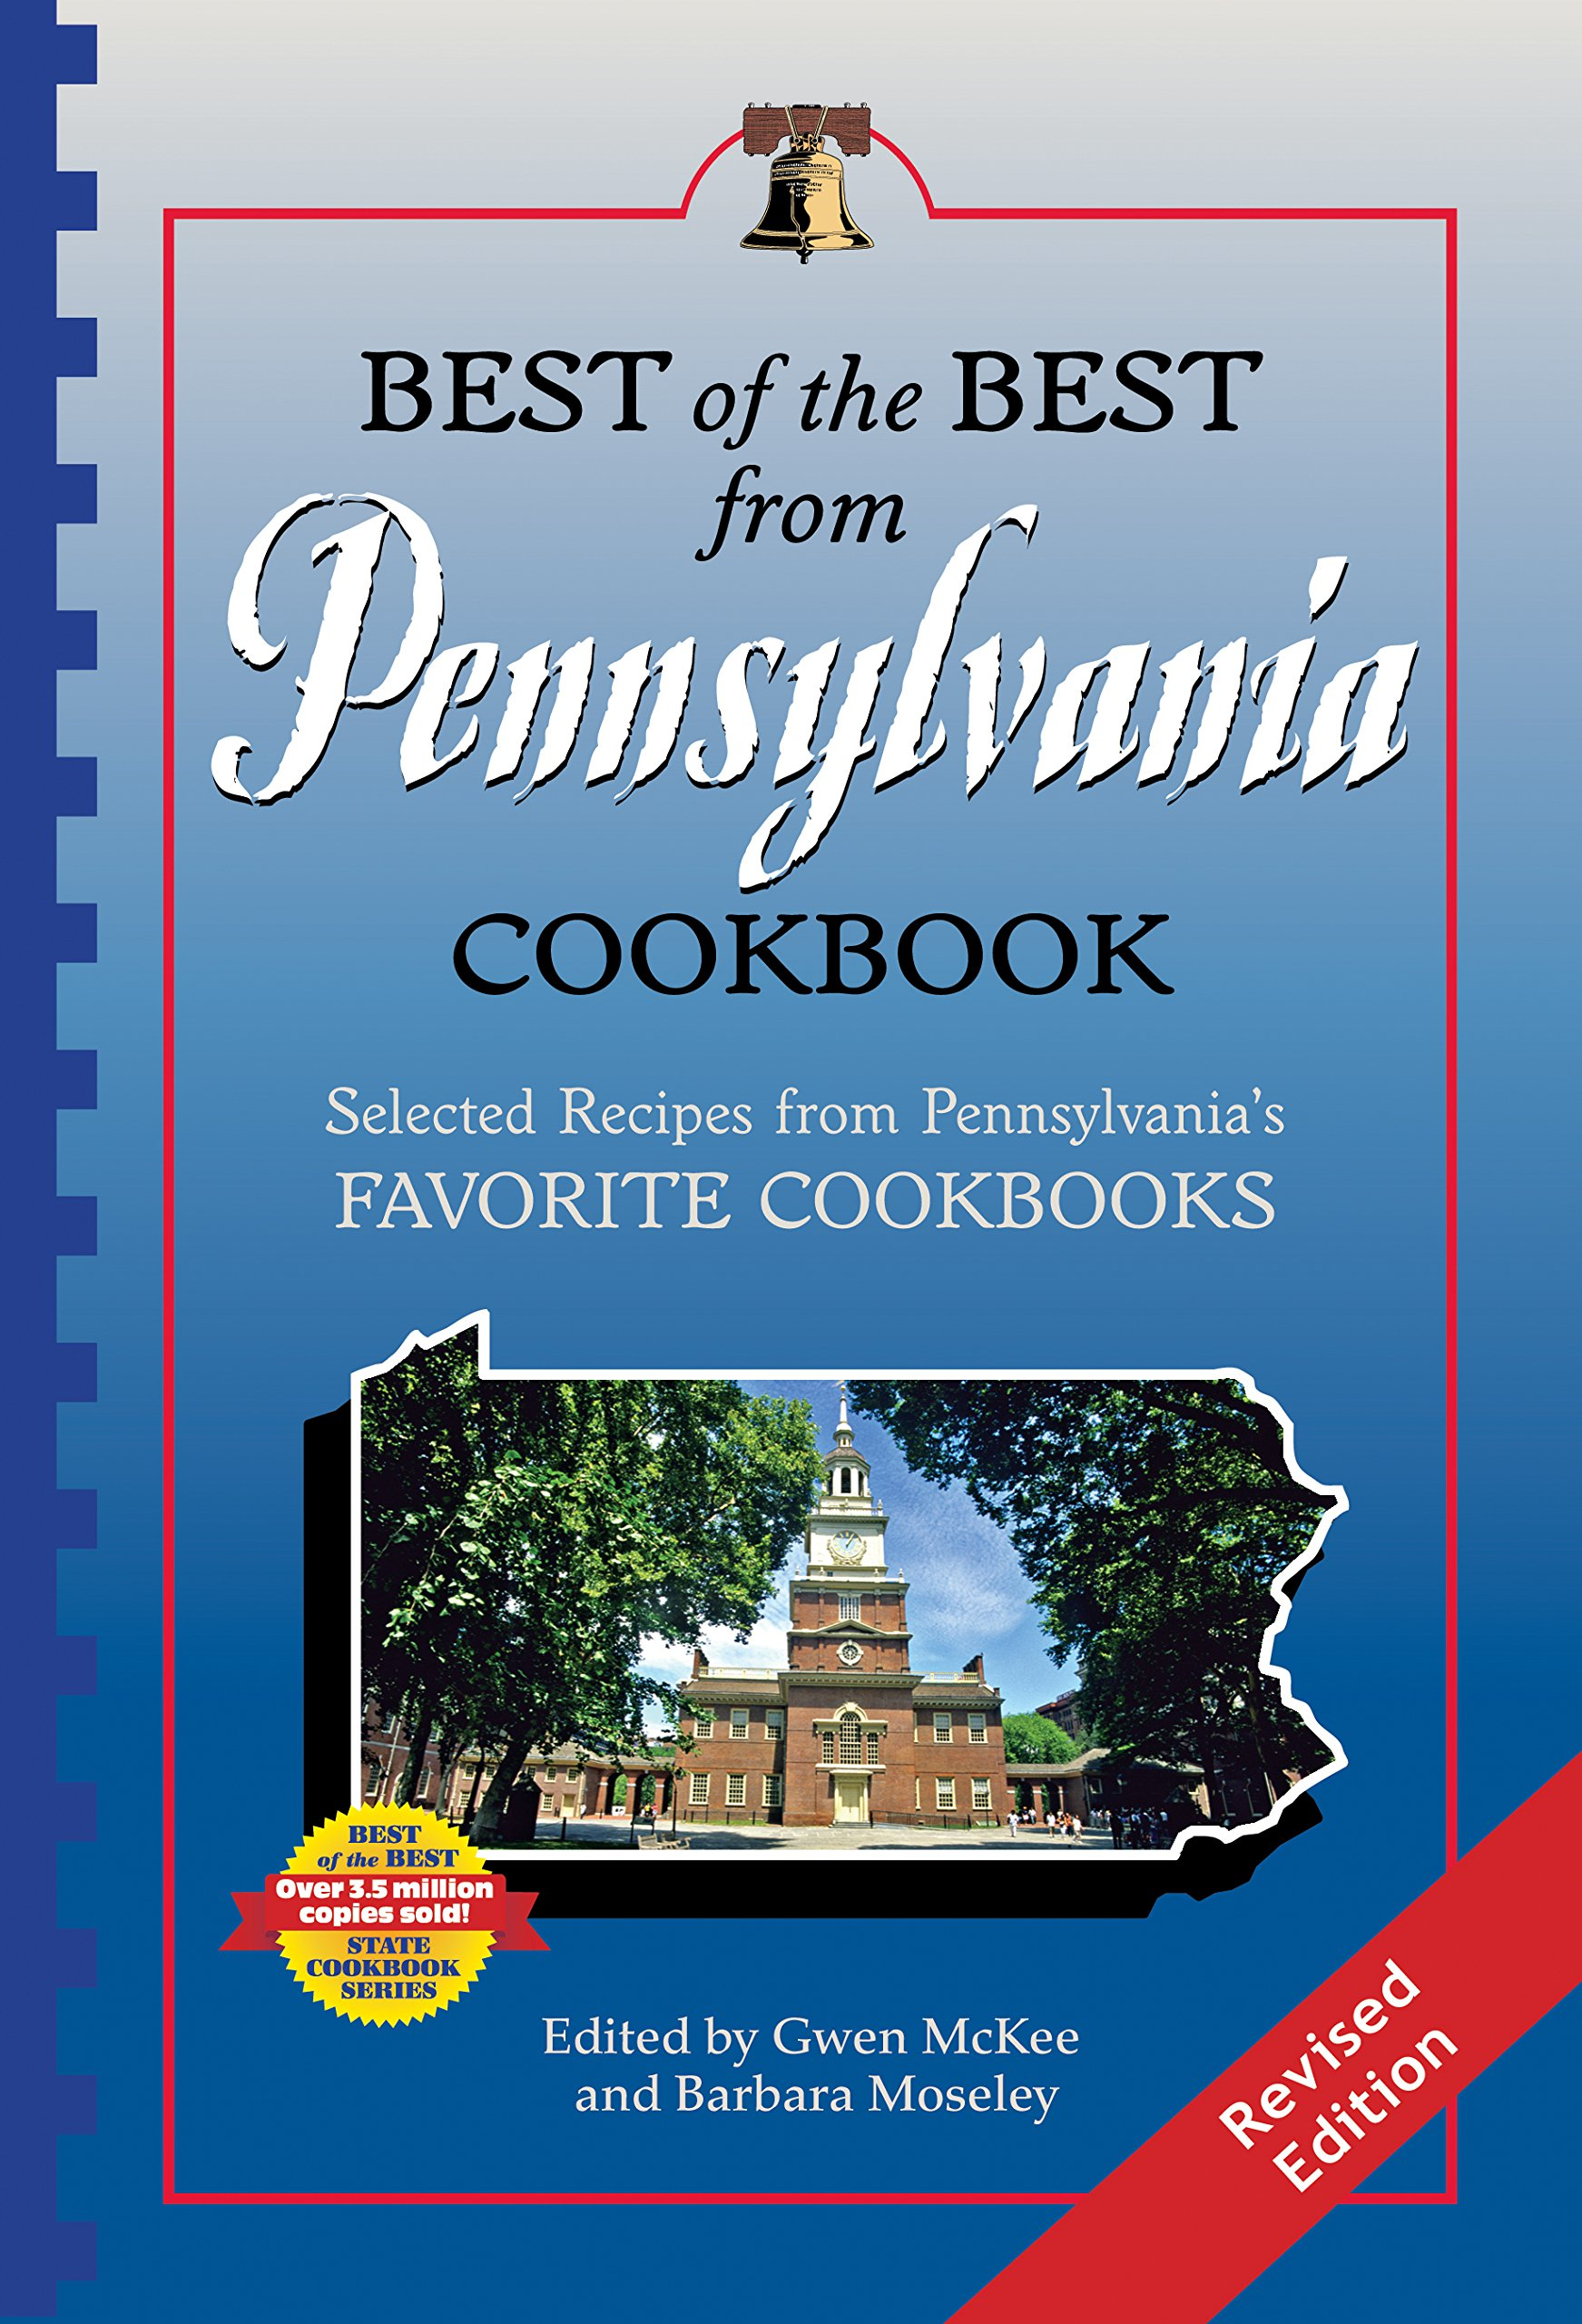 Best of the Best from Pennsylvania CookBook: Selected Recipes from Pennsylvania's Favorite Cookbooks (Best of the Best Cookbook) PDF